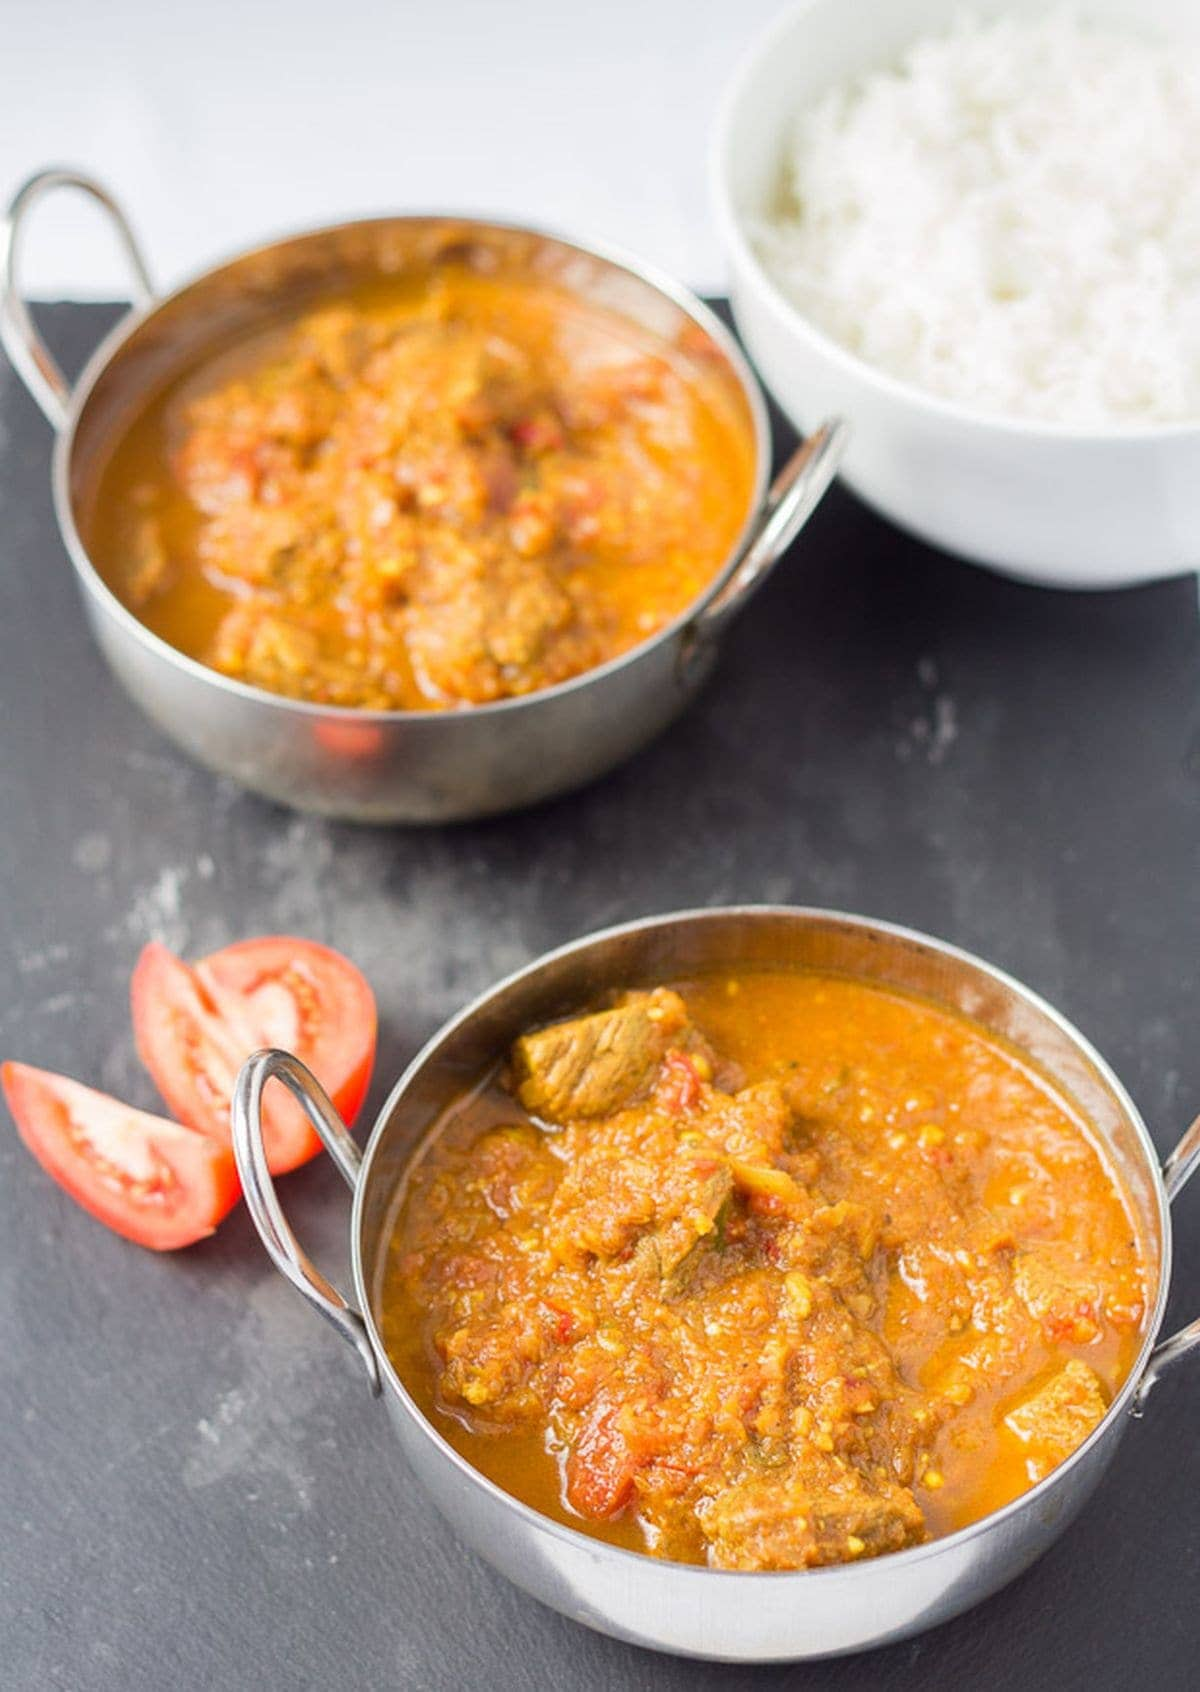 Two balti dishes of beef curry casserole with a dish of rice to the side.